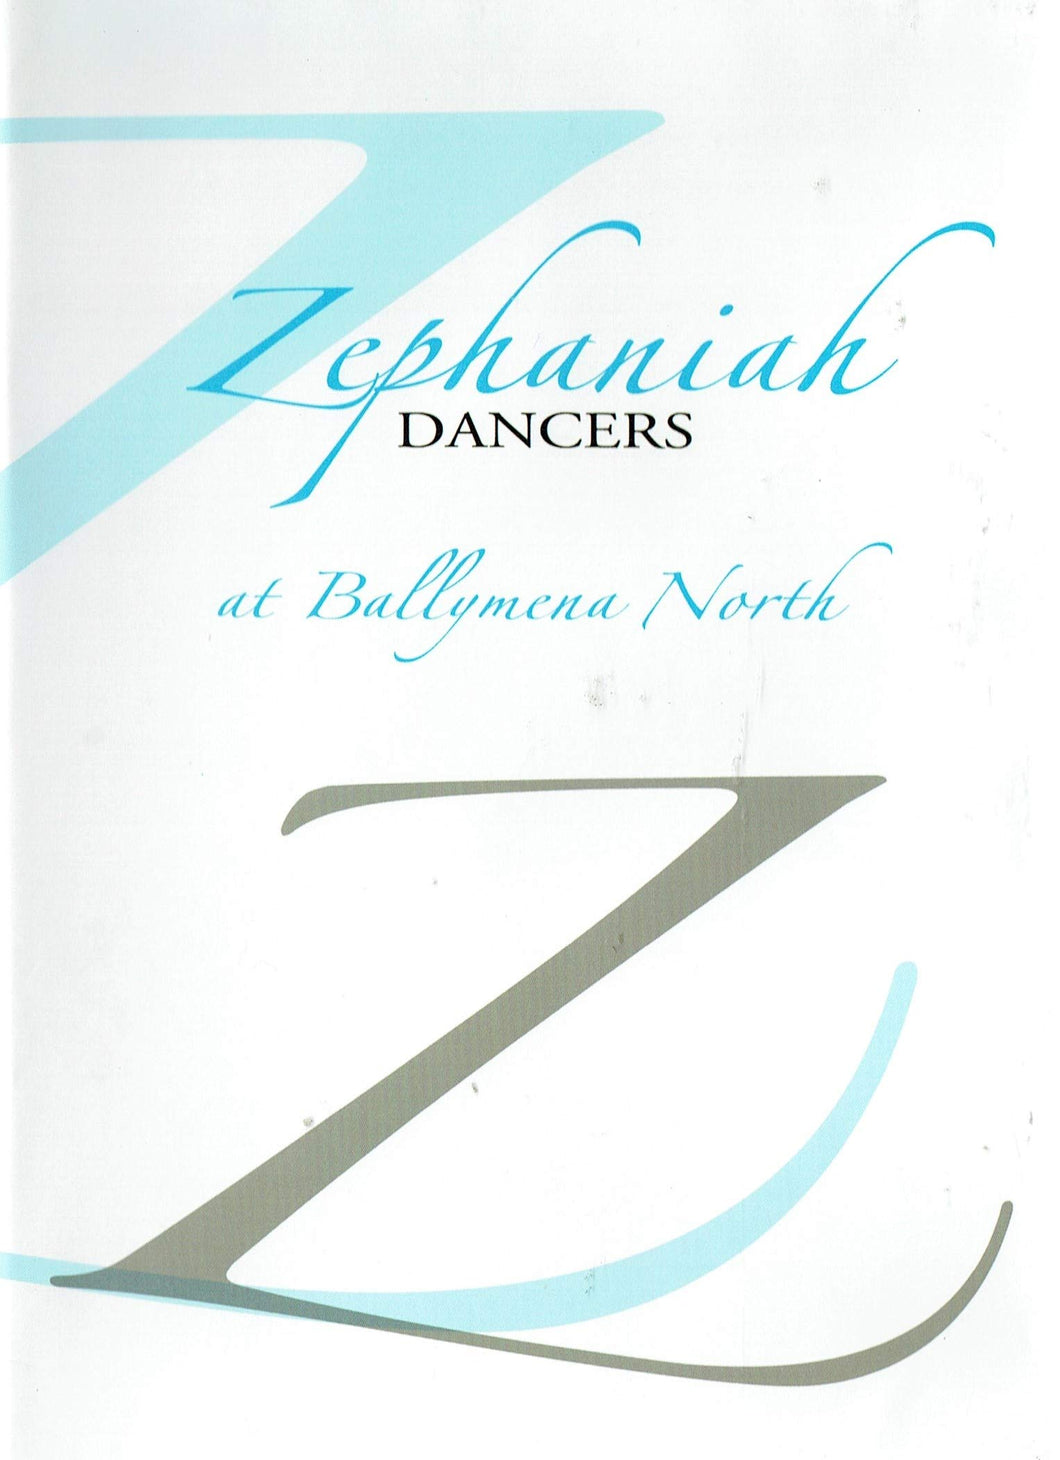 Zephaniah Dancers at Ballymena North